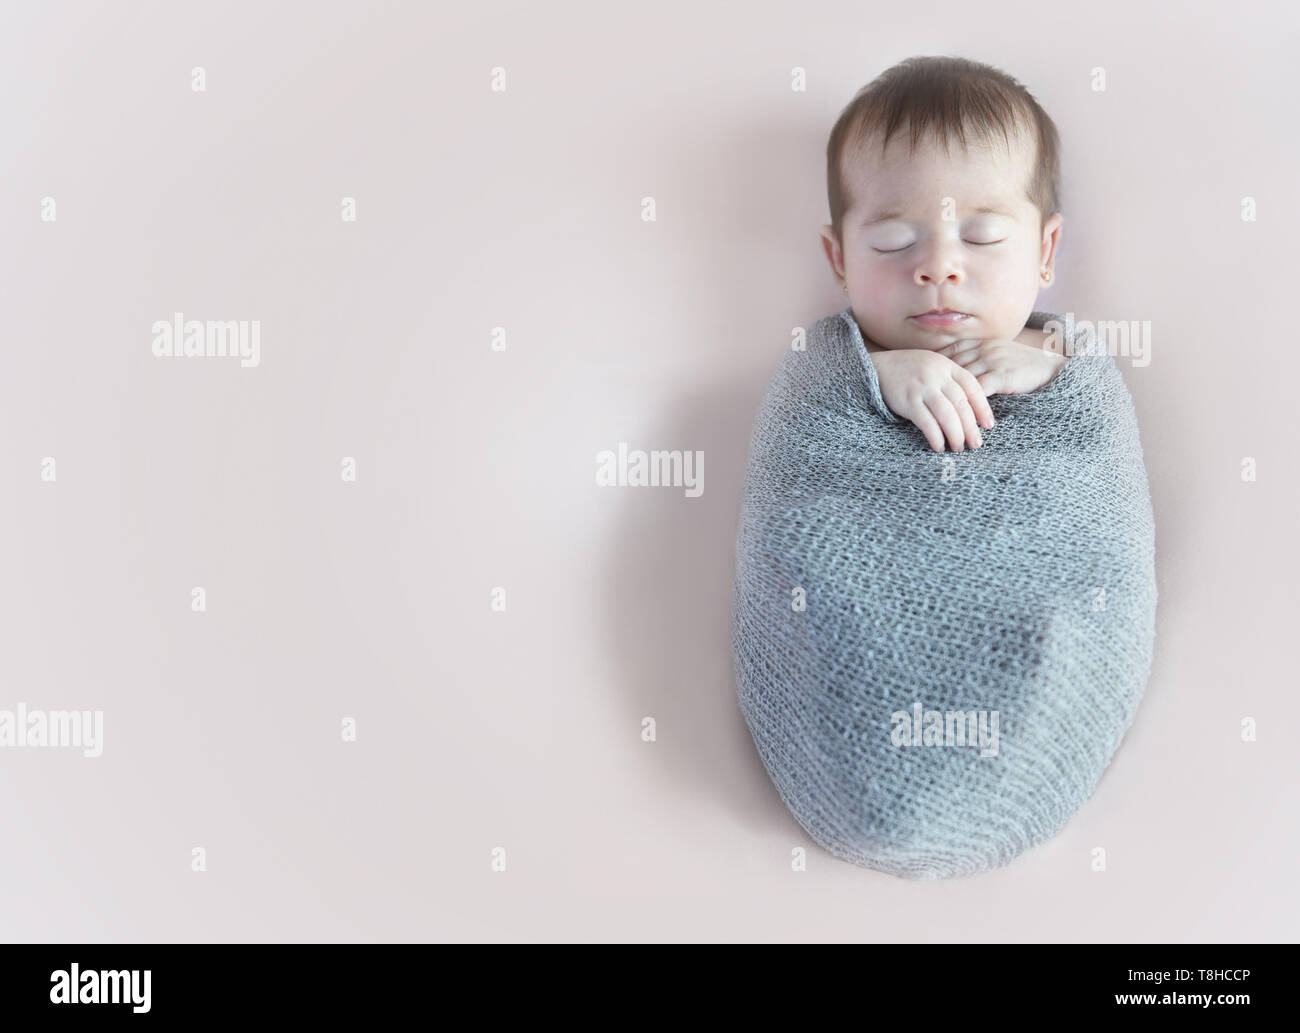 Newborn girl slepping wrapping in a gray blanket - Stock Image